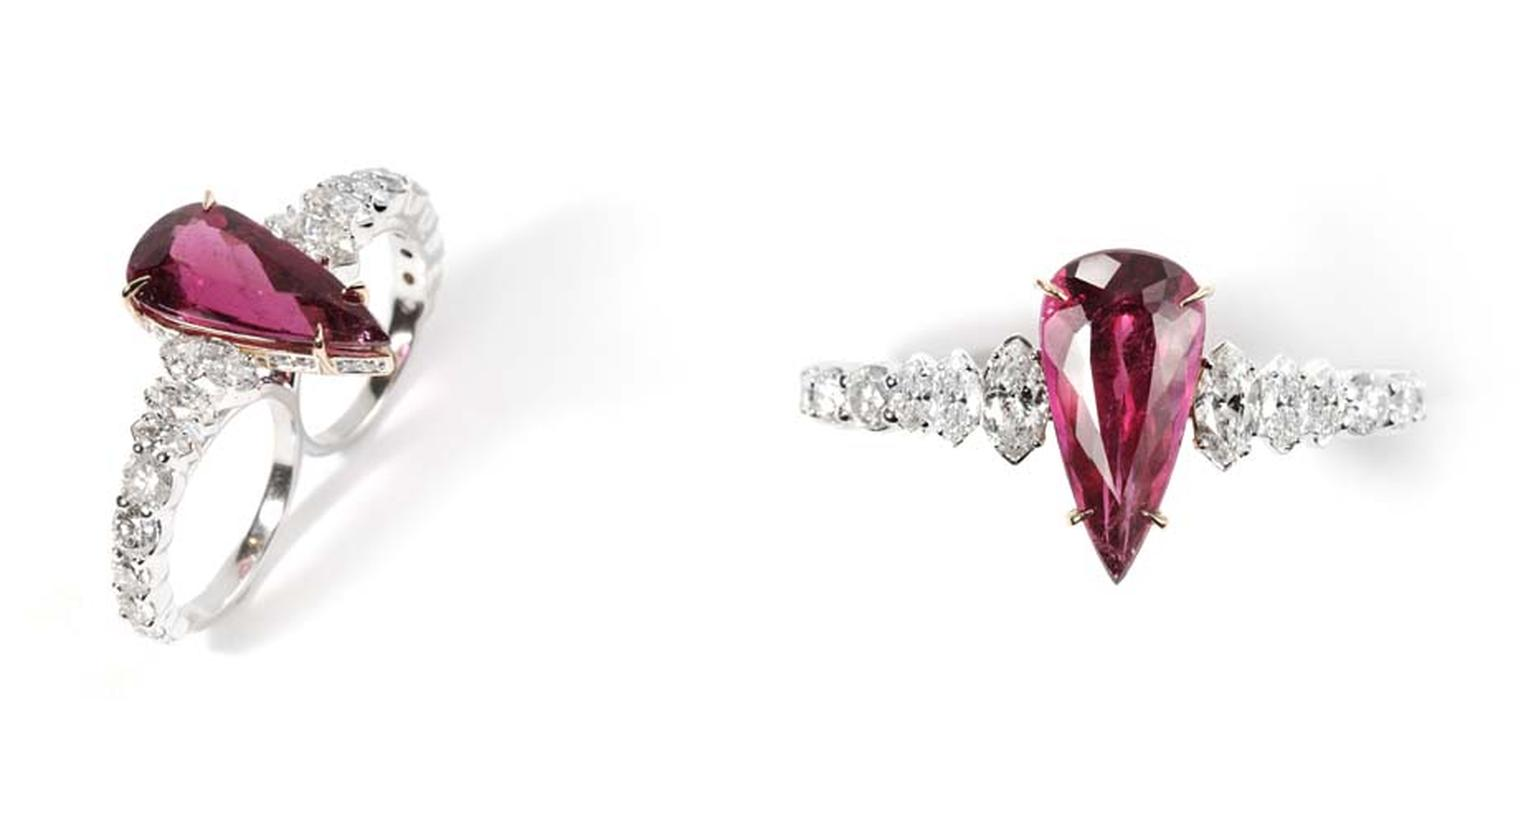 Ara Vartanian two-finger diamond and pear-shaped rubellite ring in white gold.